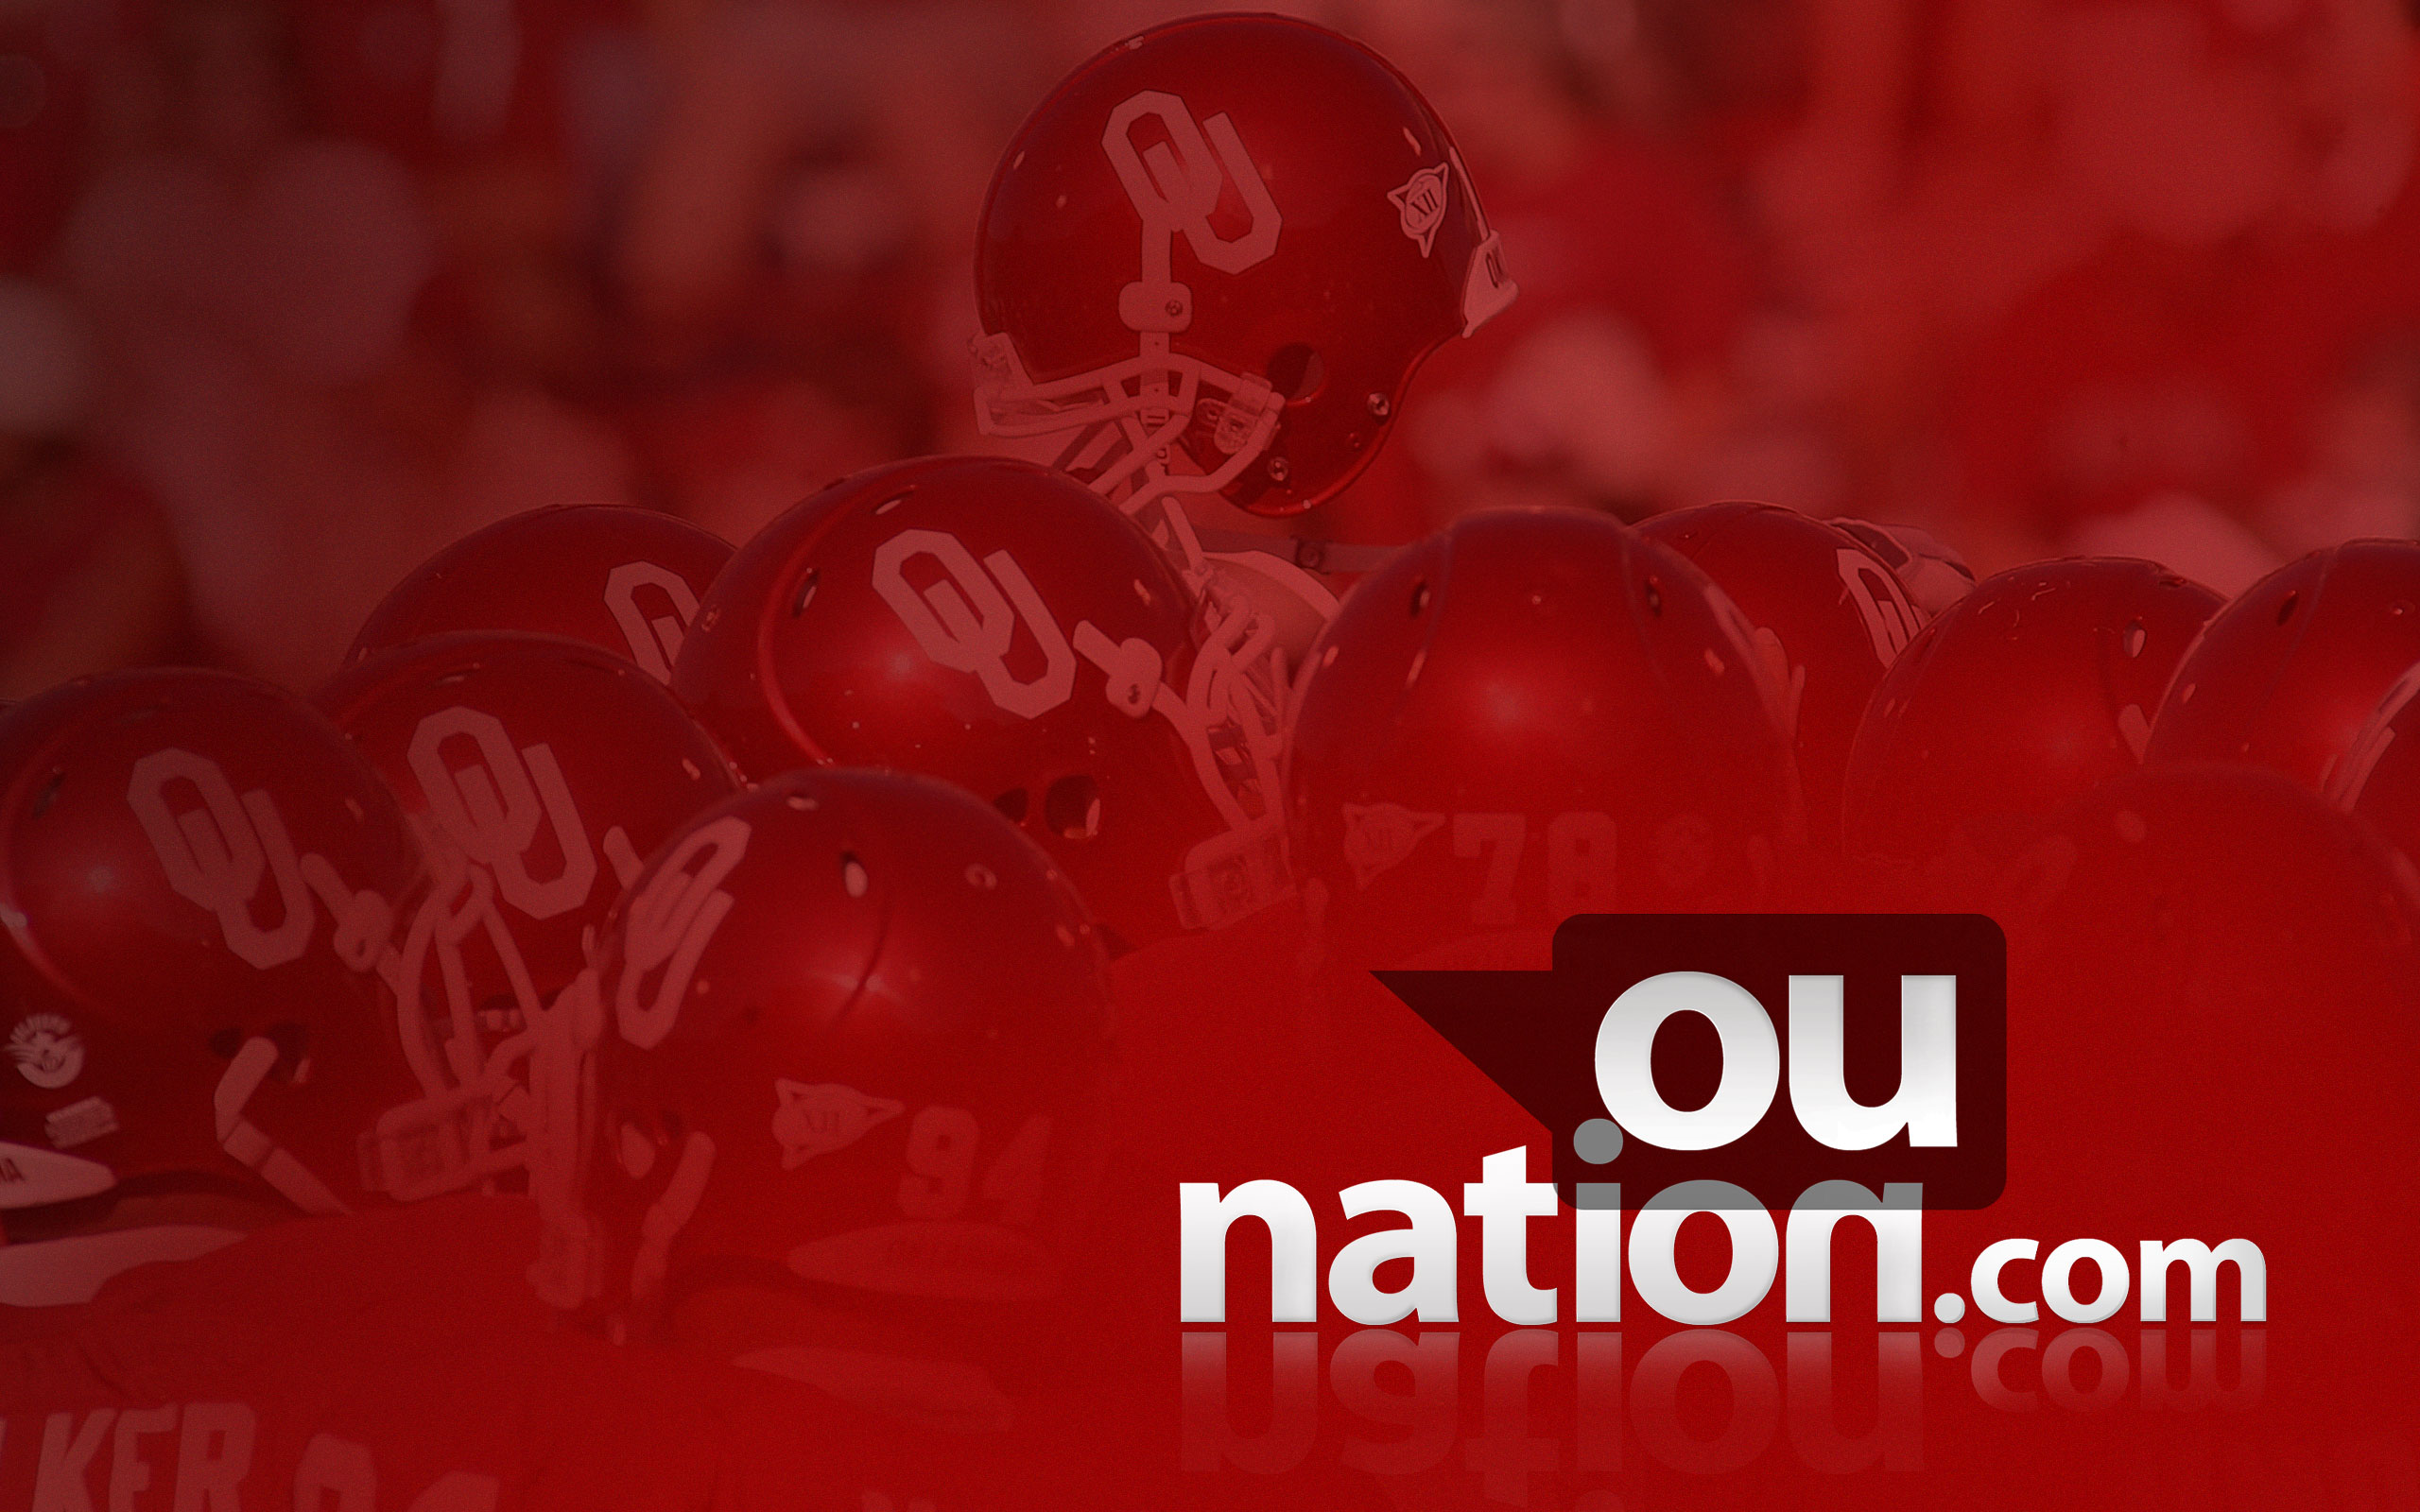 OUnation.com | University of Oklahoma